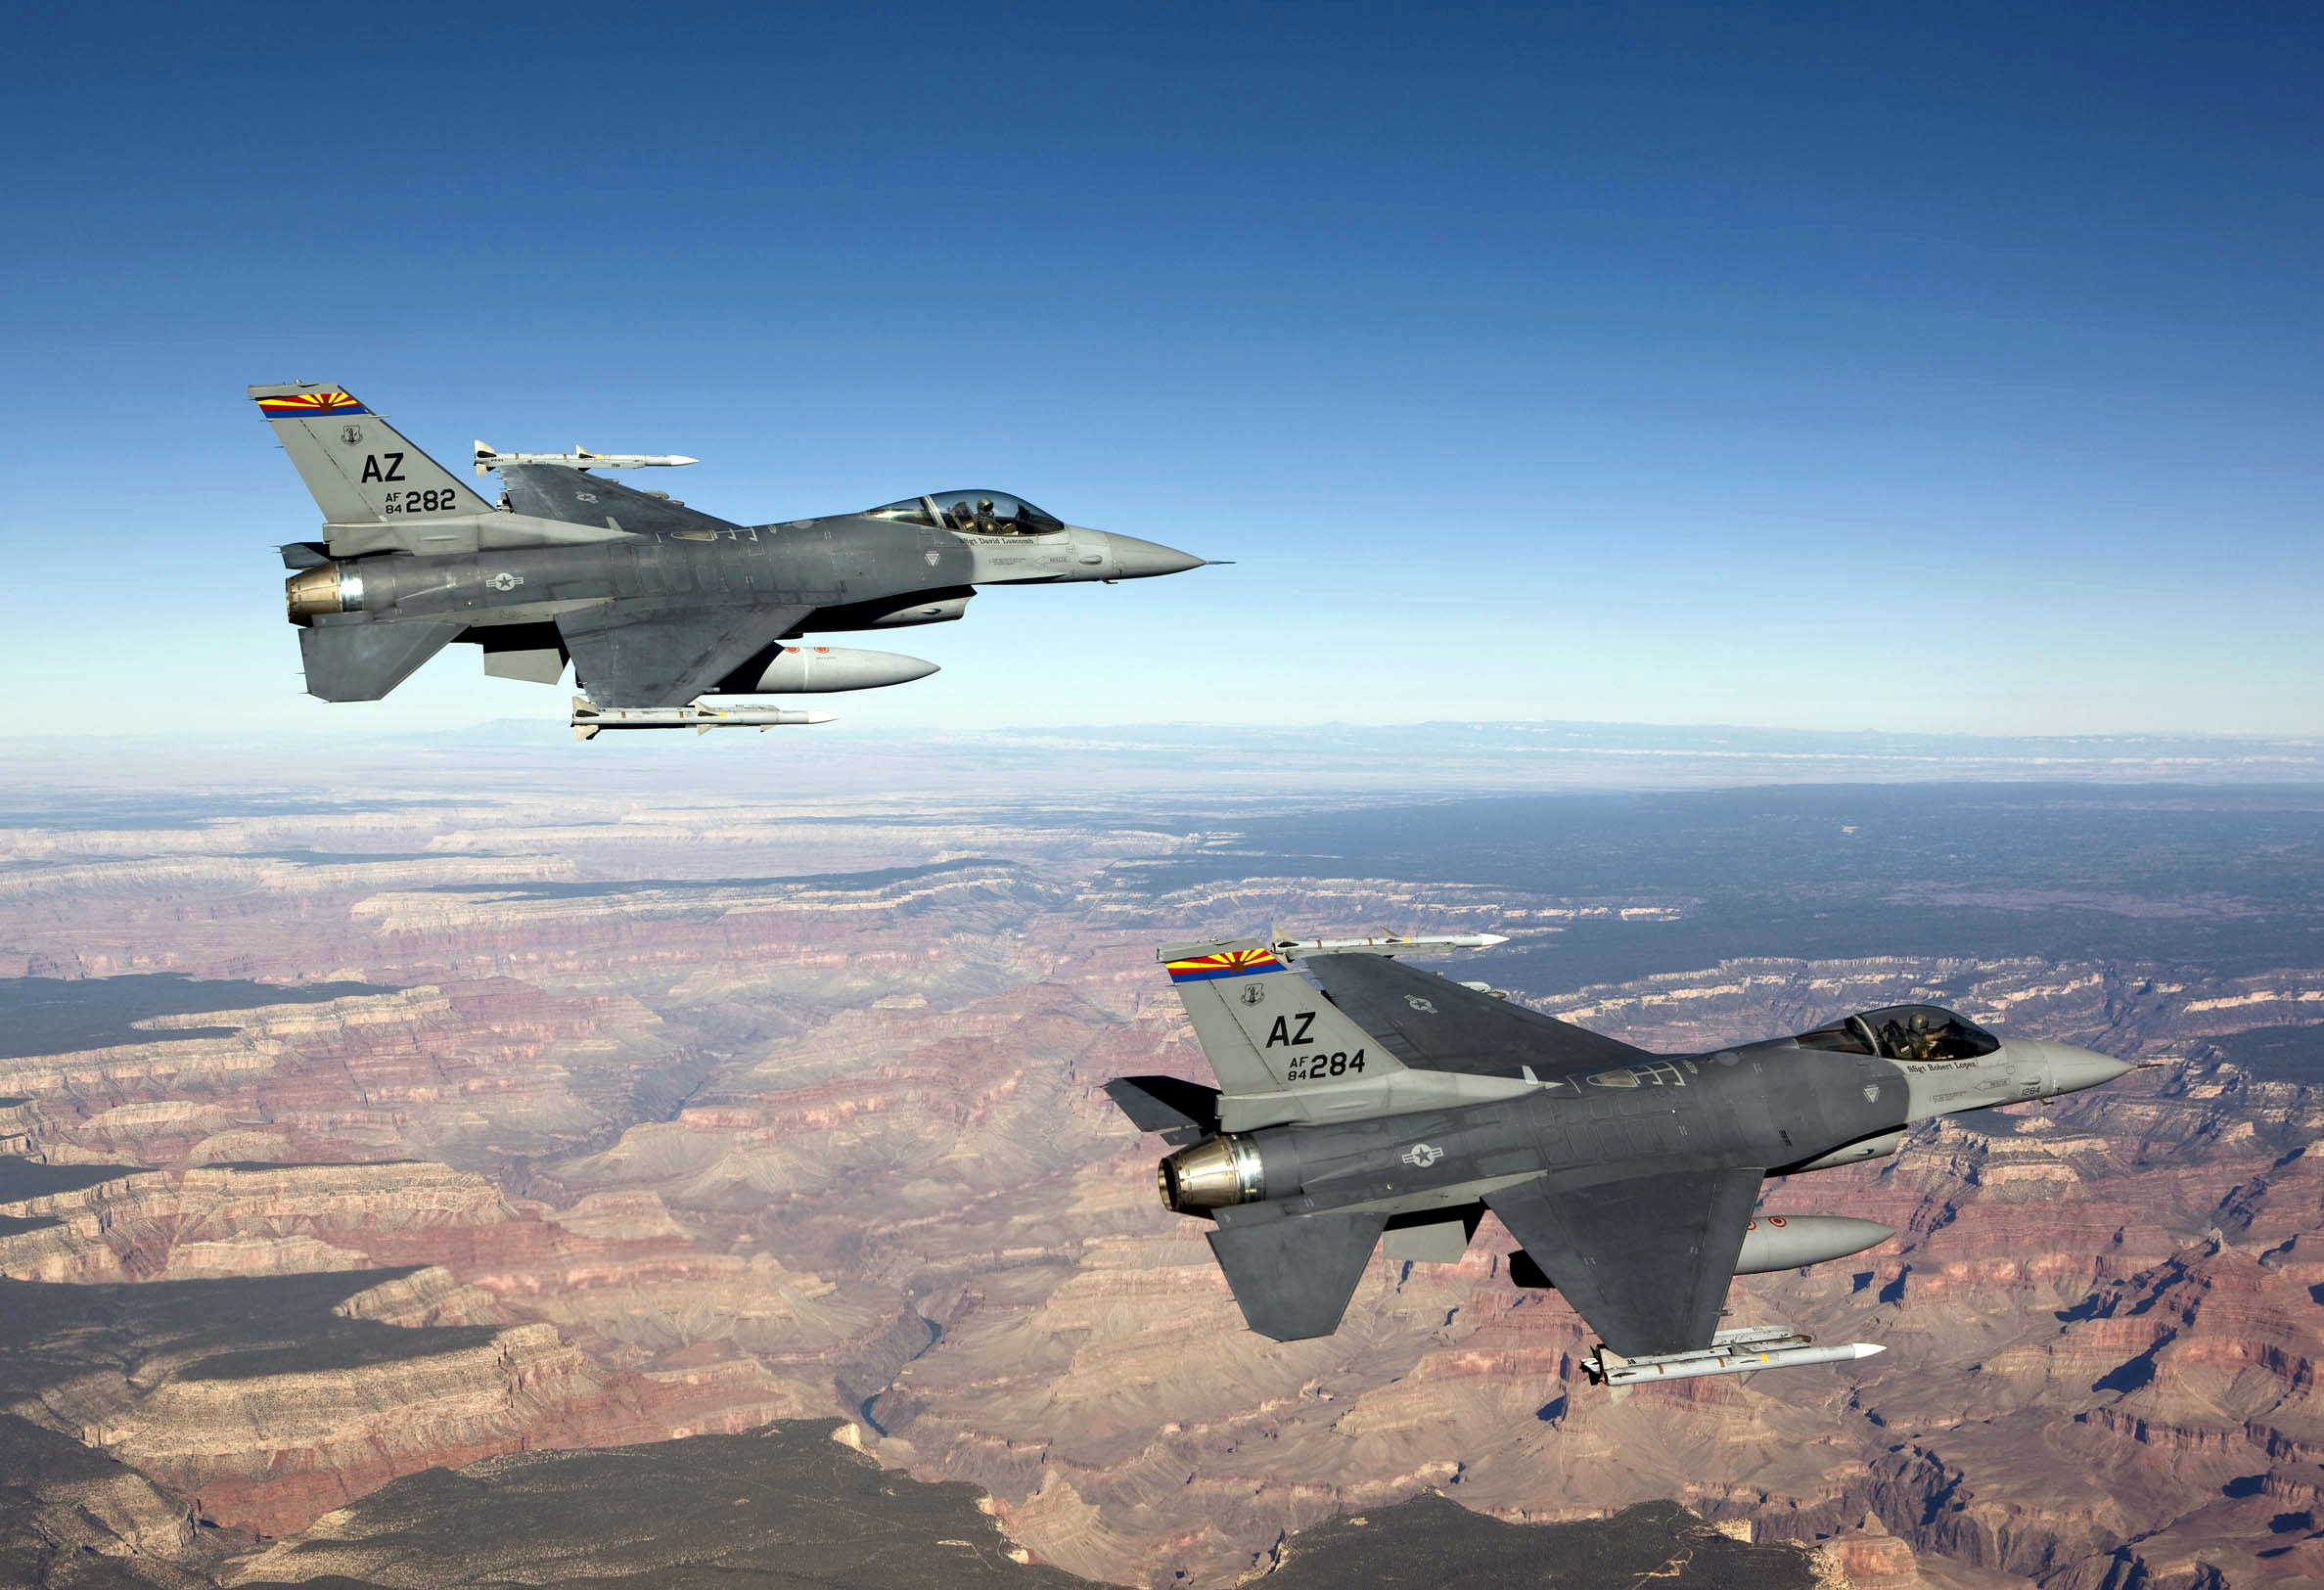 F 16 Fighter Jet Crashes In Arizona